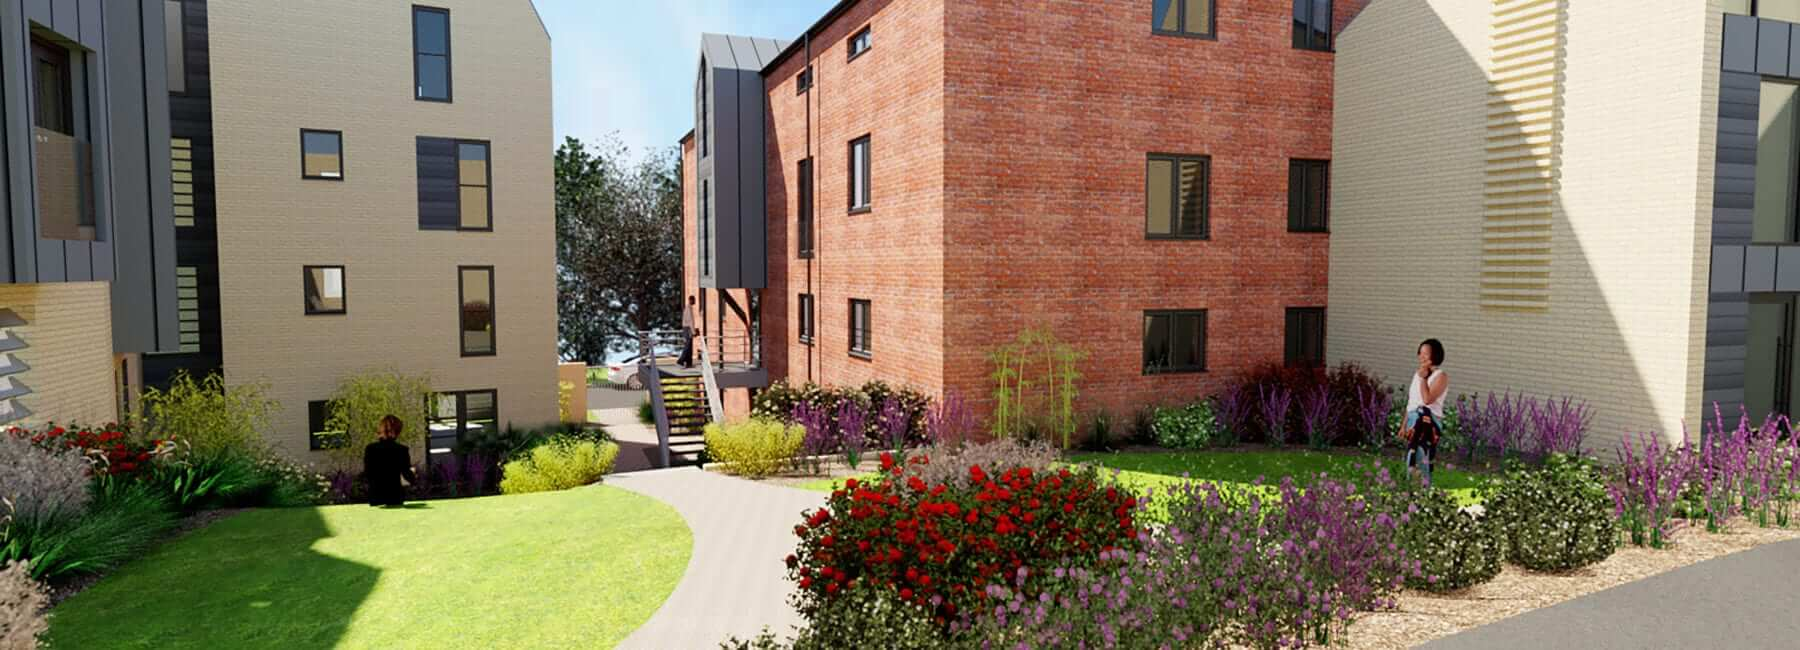 360 new affordable homes